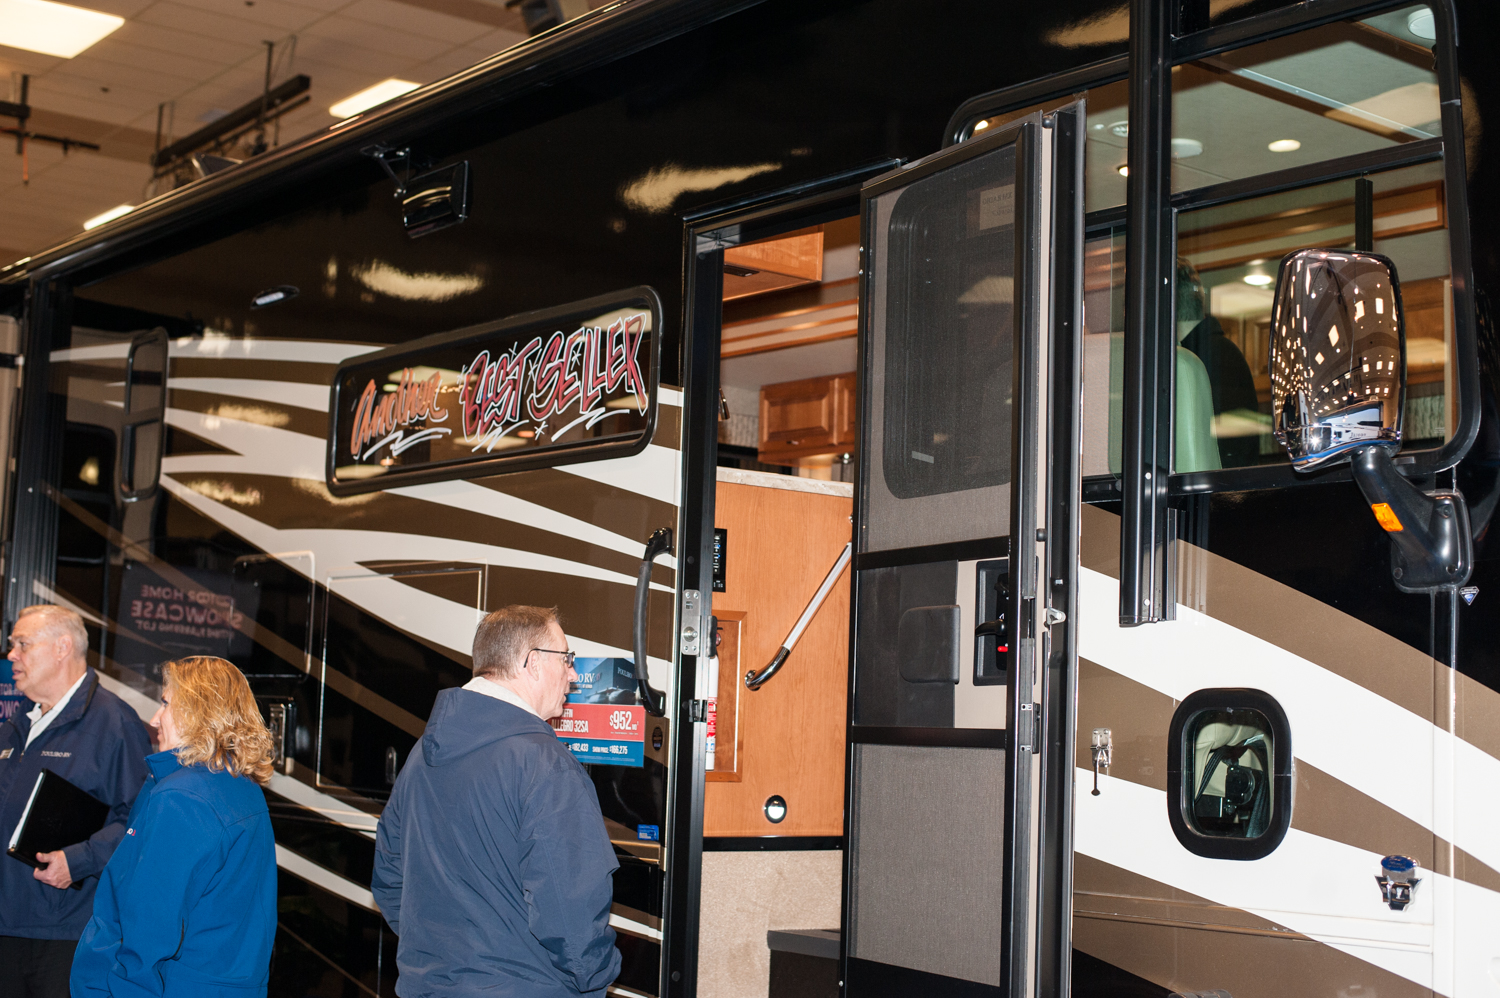 $166,275 - Poulsbo RV's 2019 Tiffin Allegro 32 SA. The Tacoma RV Show is happening this weekend (Jan. 17-20) at the Tacoma Dome, with hundreds of RV's on display and more than 100 brands at the show. Since we are Seattle 'Refined' - you know we had to check out the most expensive, swankiest vehicles at the show! (Image: Elizabeth Crook / Seattle Refined)